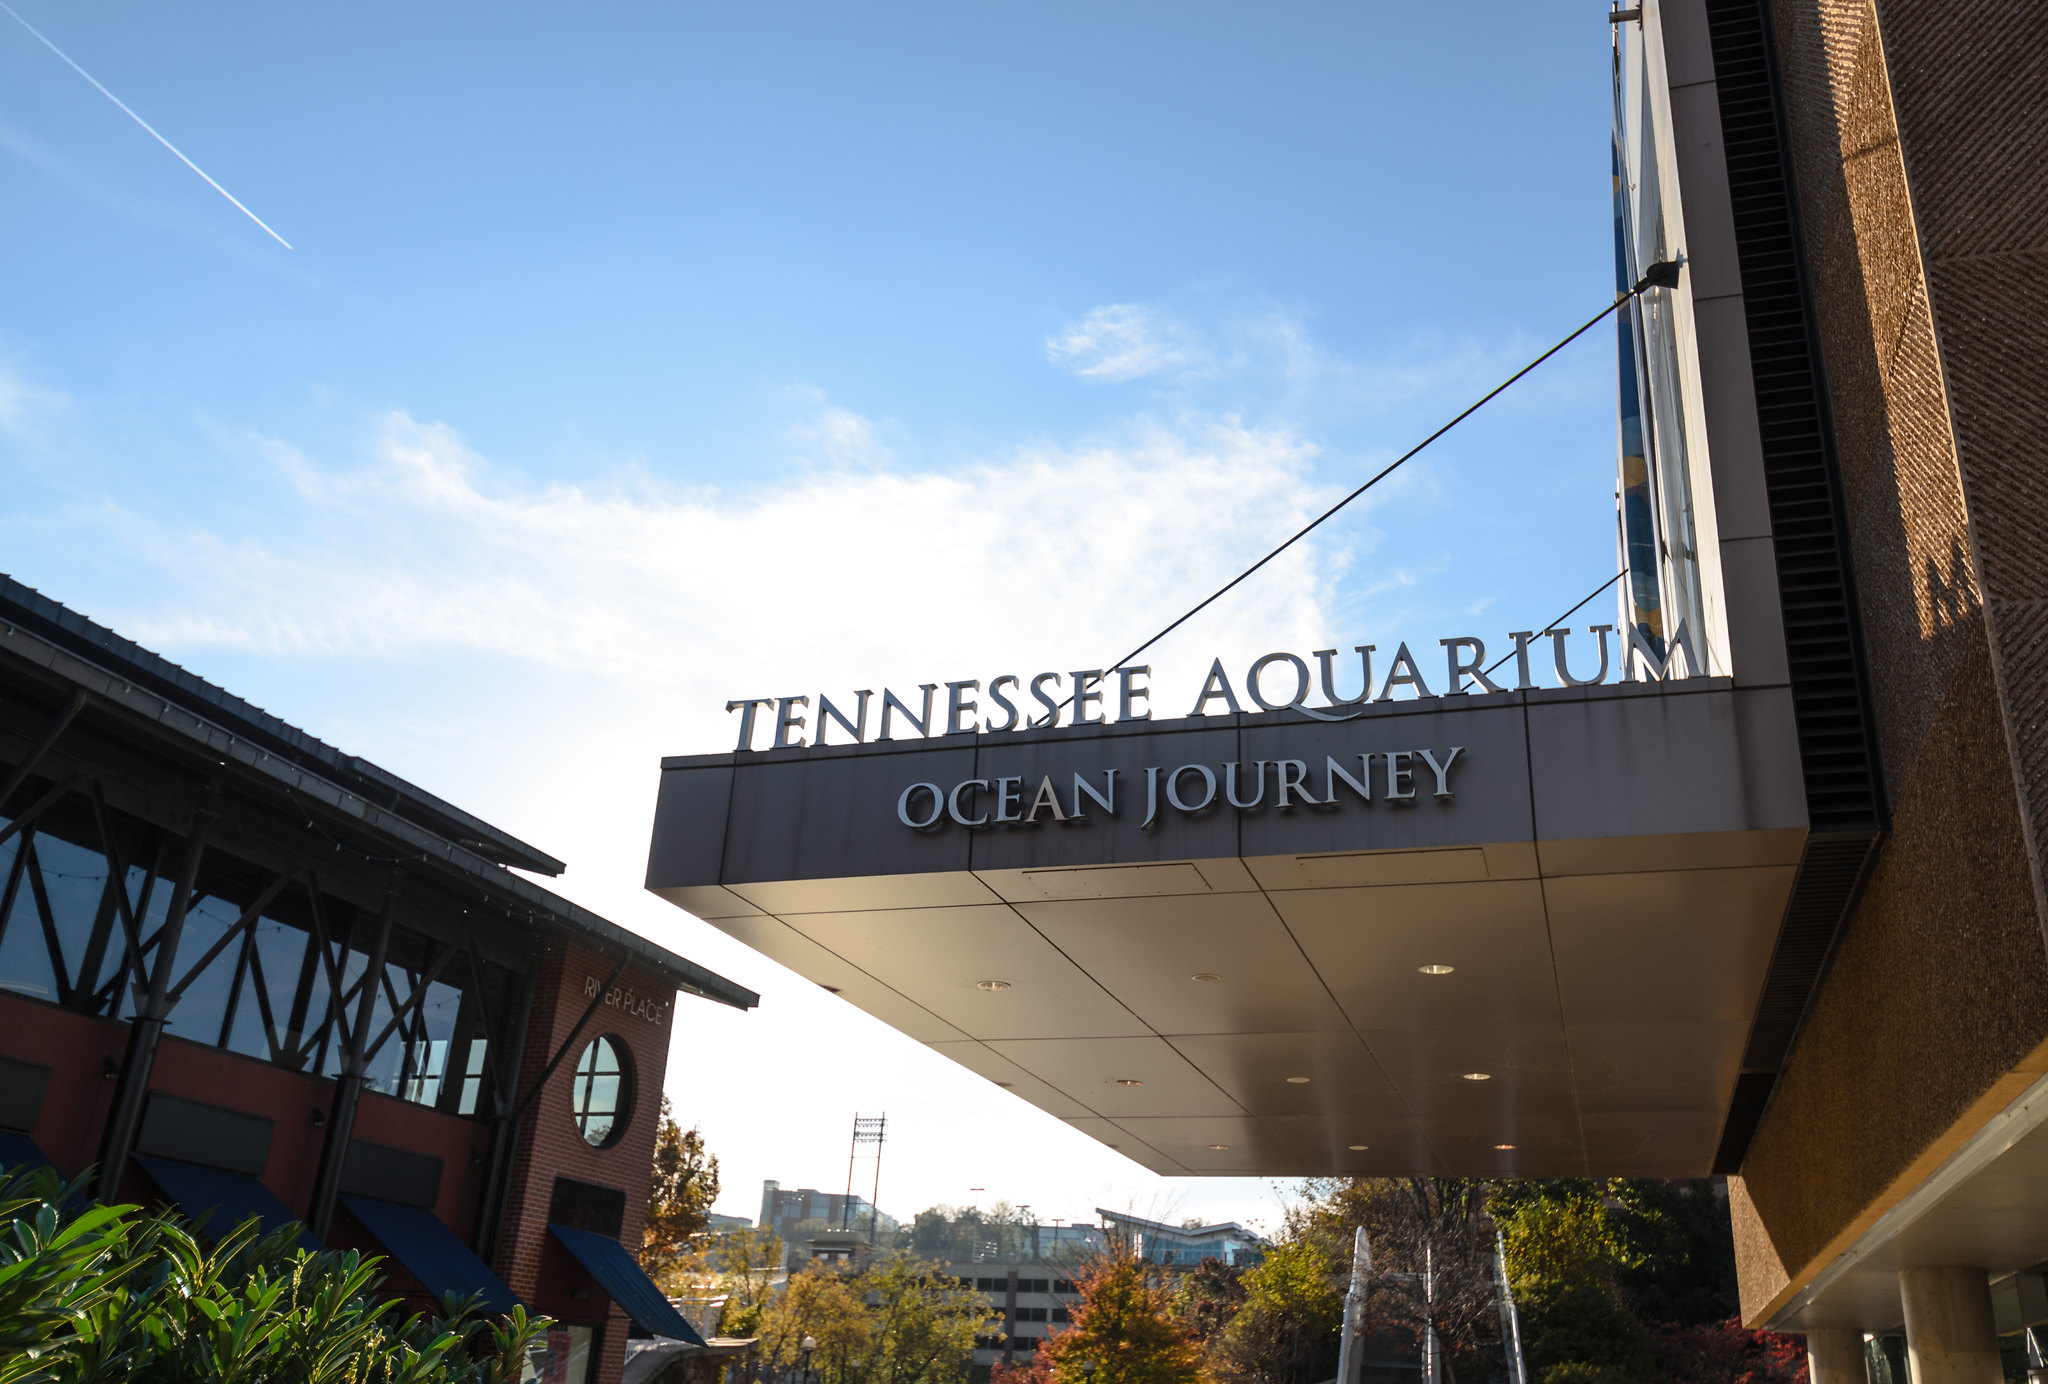 Visit The Tennessee Aquarium Without Leaving Your House With Its Habitat Webcams